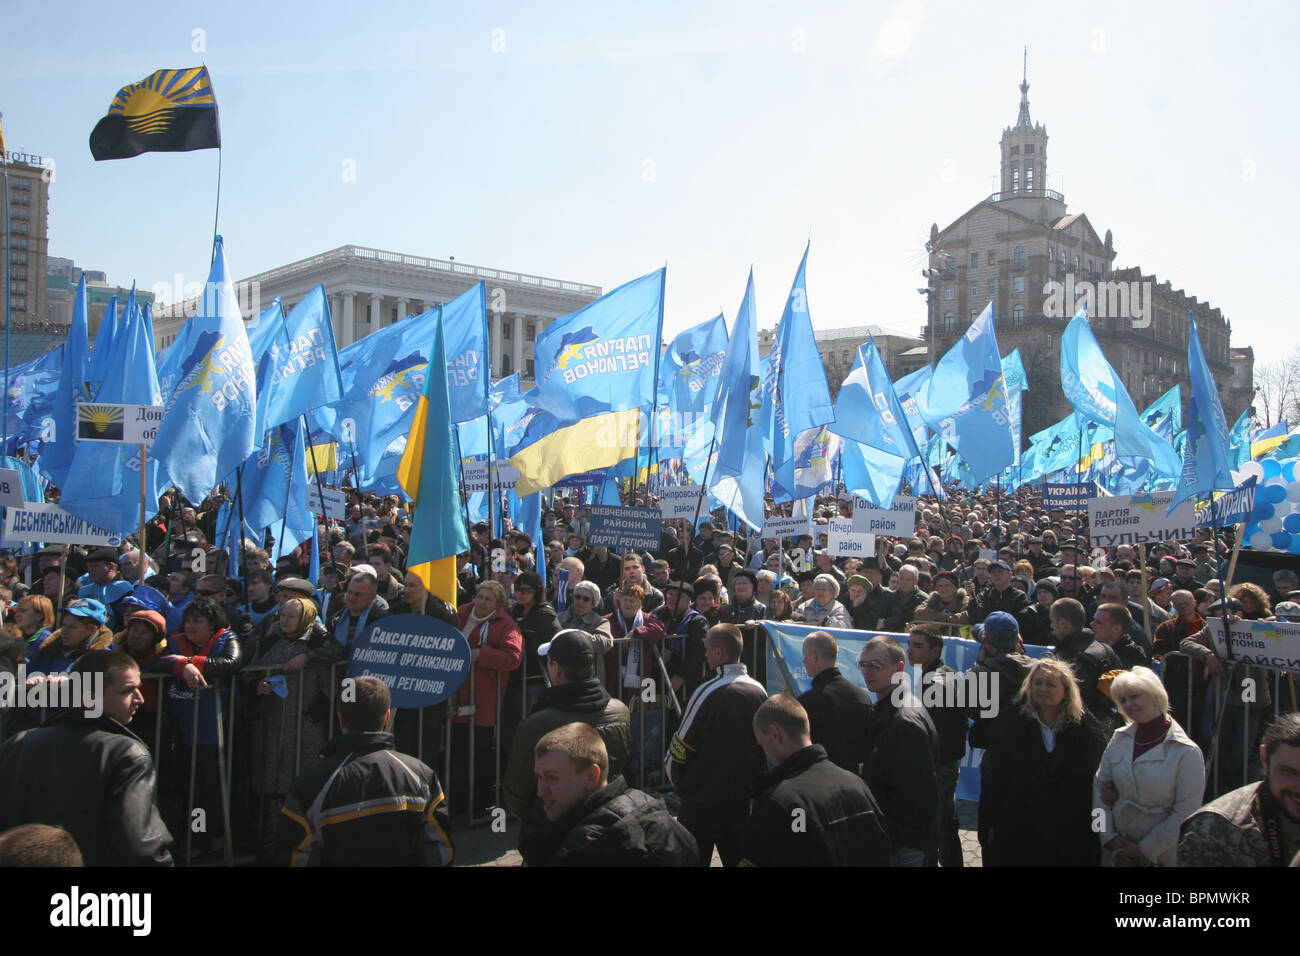 Ukraine's Party of Regions holds mass rally in Kiev - Stock Image